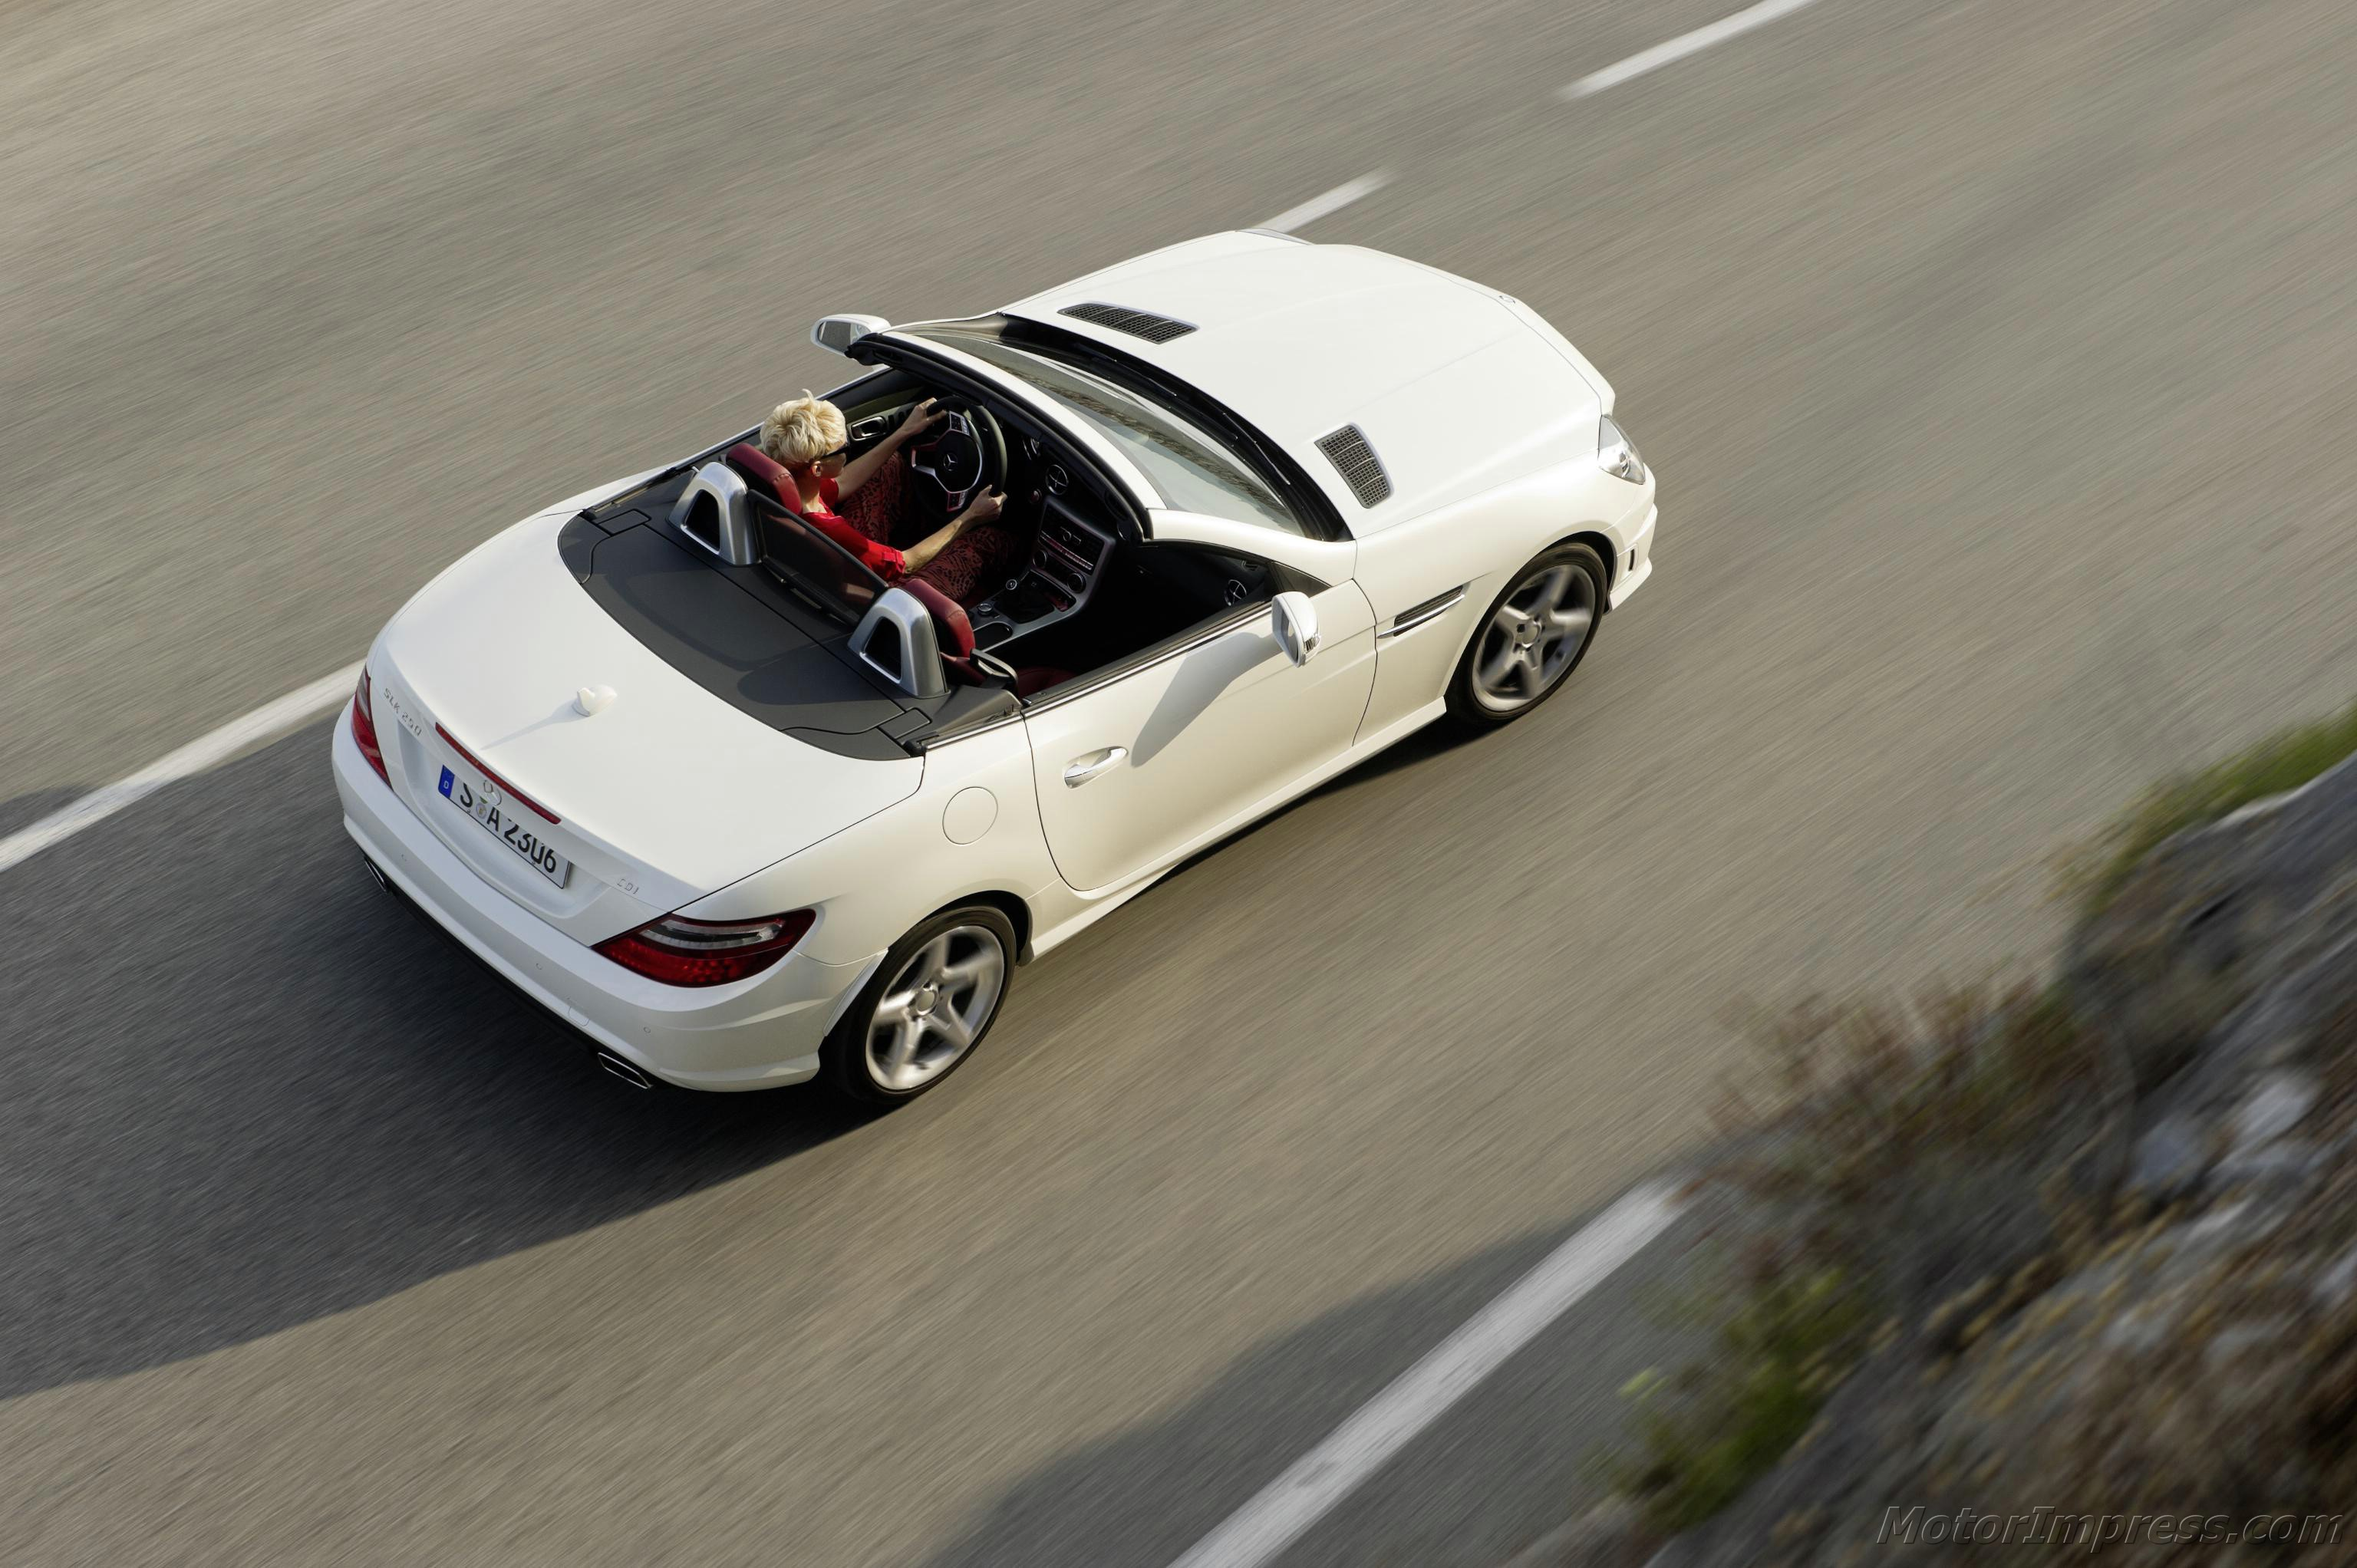 Mercedes-Benz SLK 250 CDI photo 13